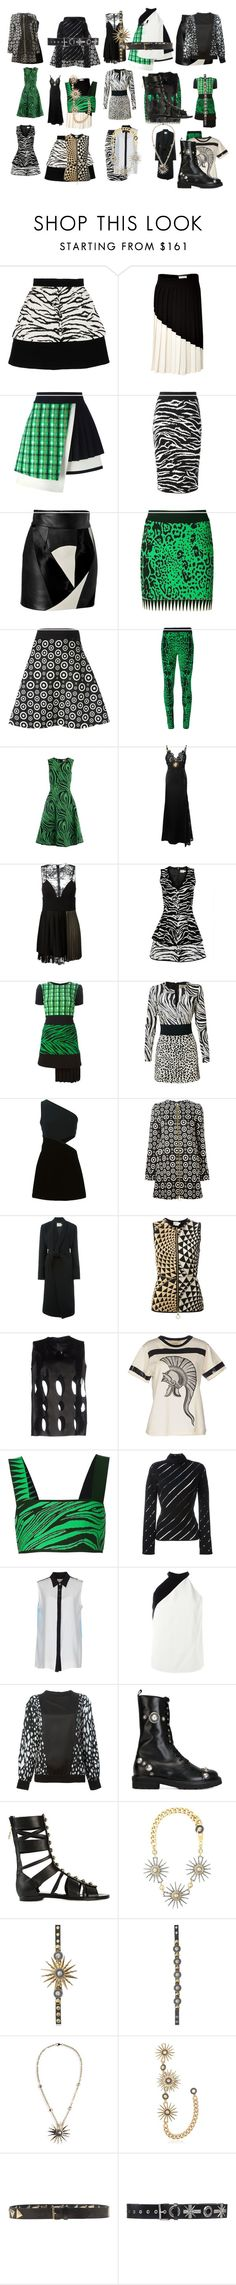 """Untitled #3285"" by luciana-boneca on Polyvore featuring FAUSTO PUGLISI, women's clothing, women's fashion, women, female, woman, misses and juniors"